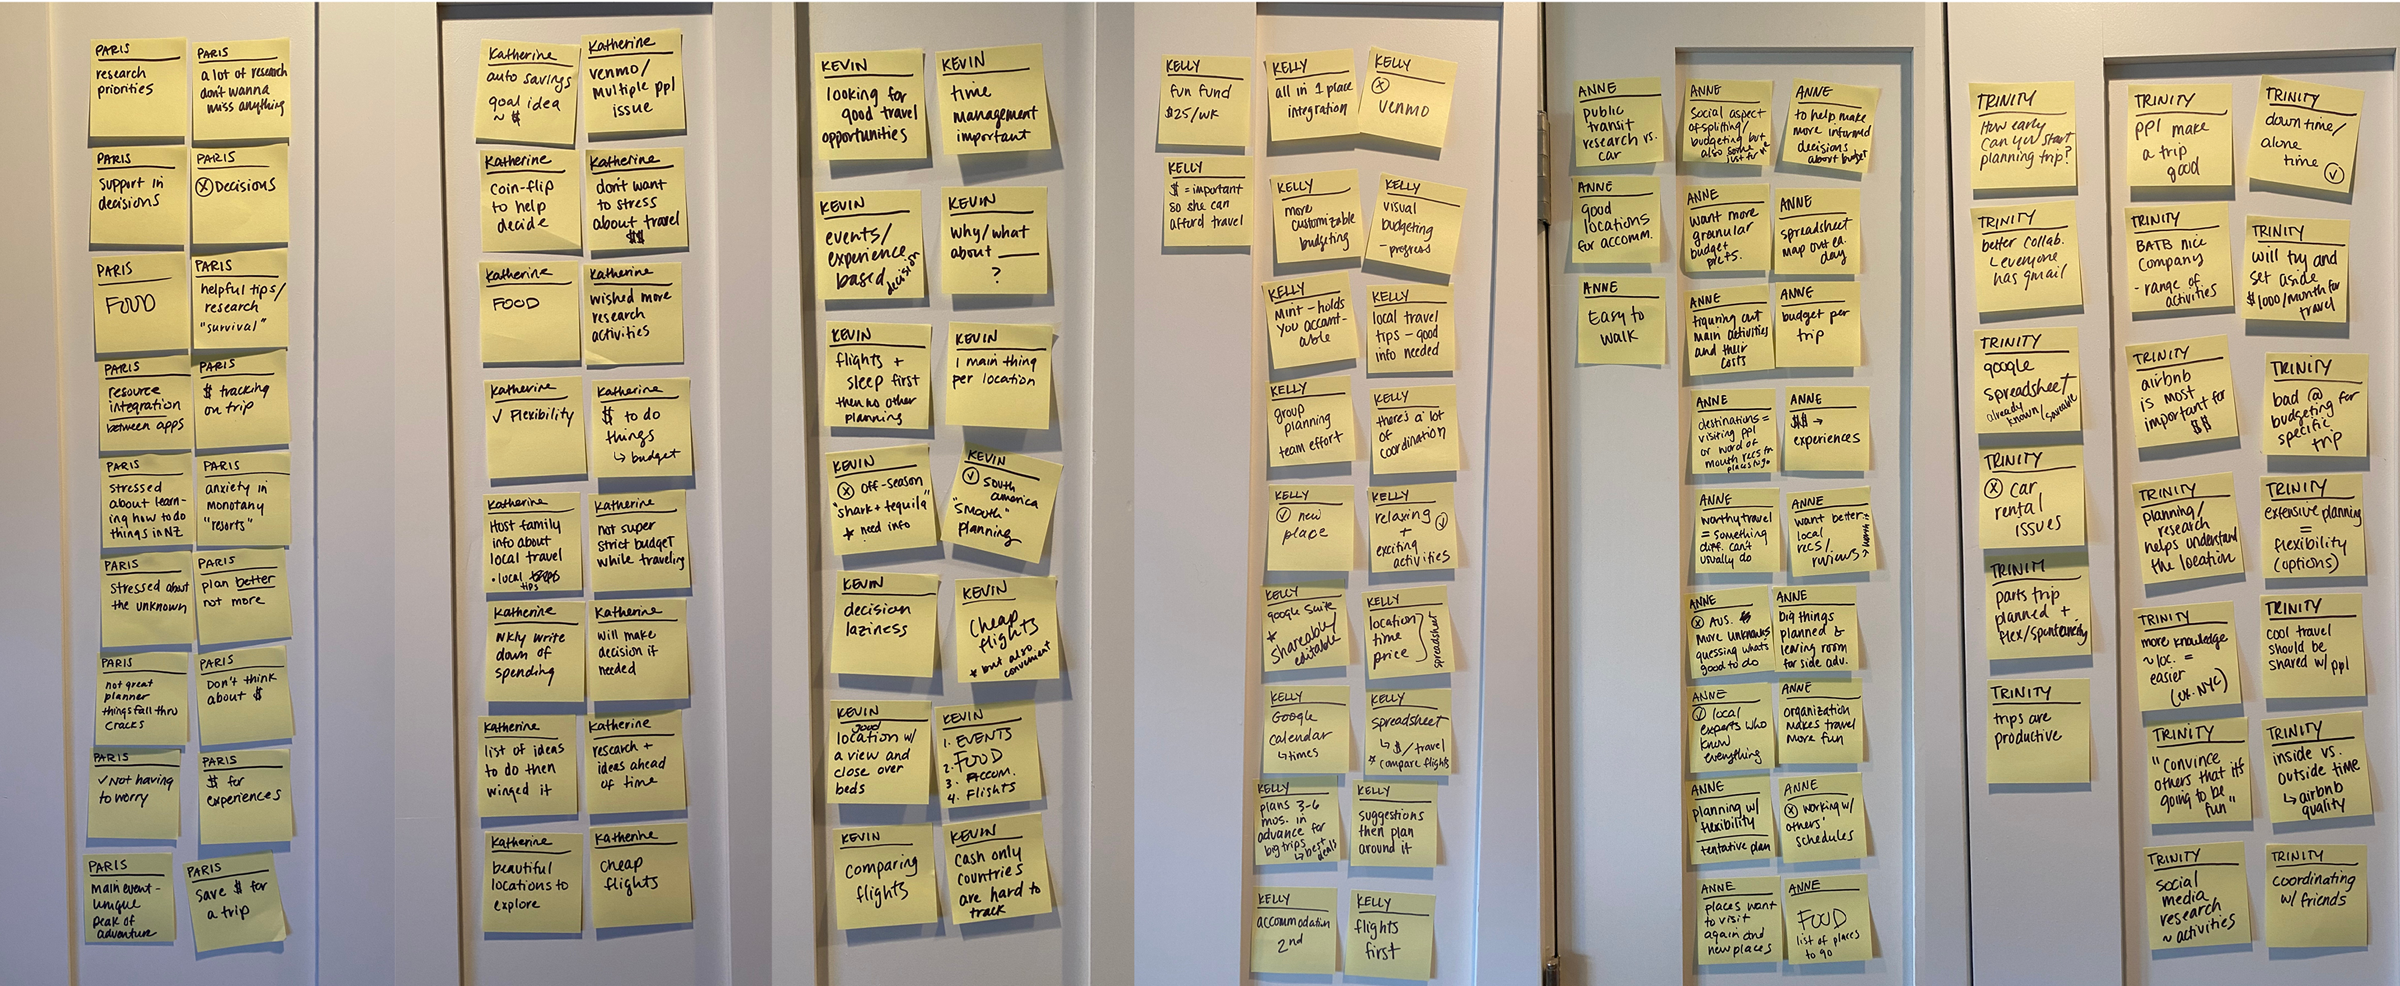 Affinity mapping image